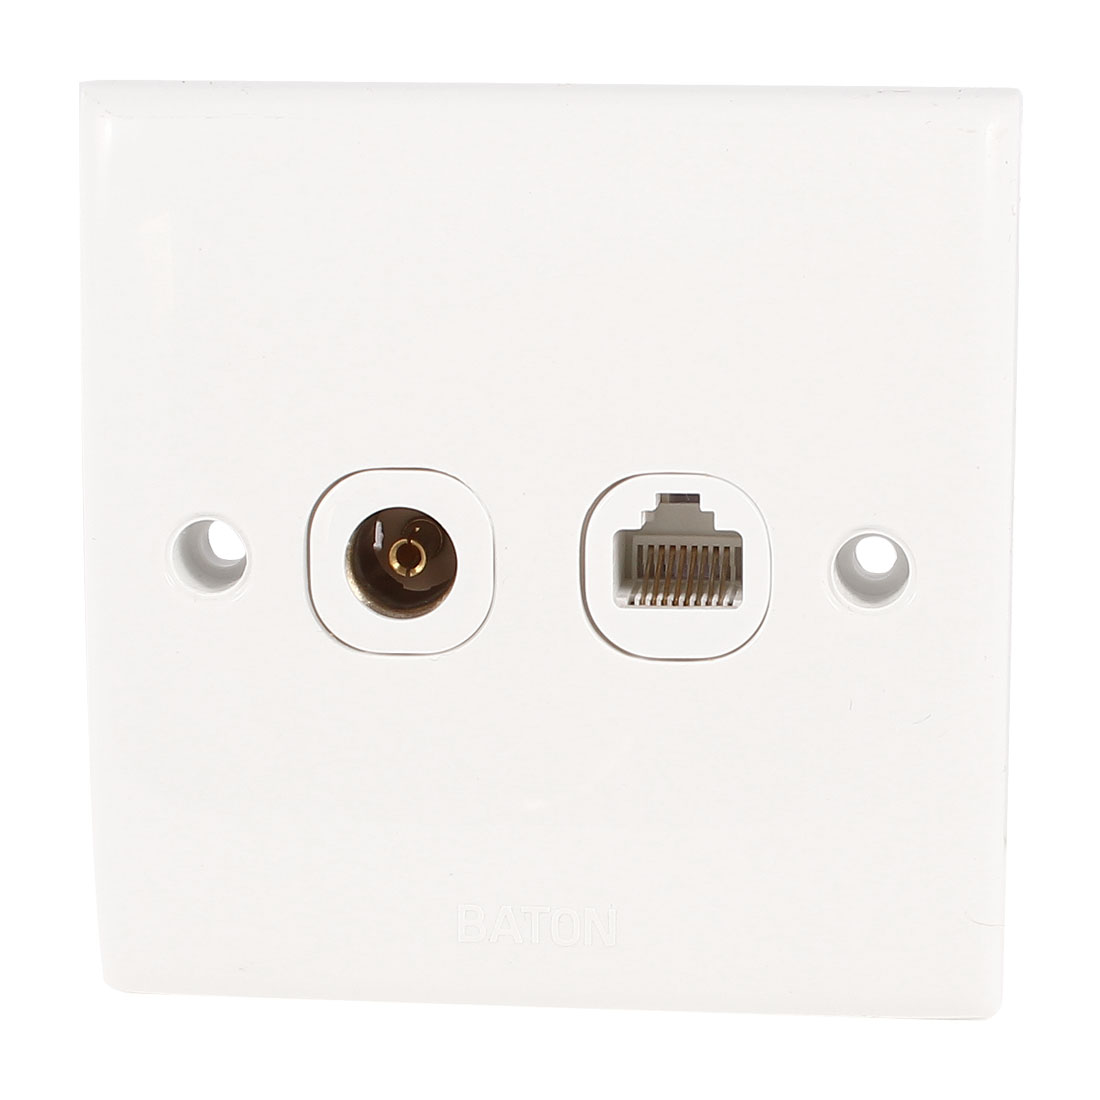 AC 250V 10A Plastic RJ45 Computer Cable Socket PAL TV Jack Wall Plate